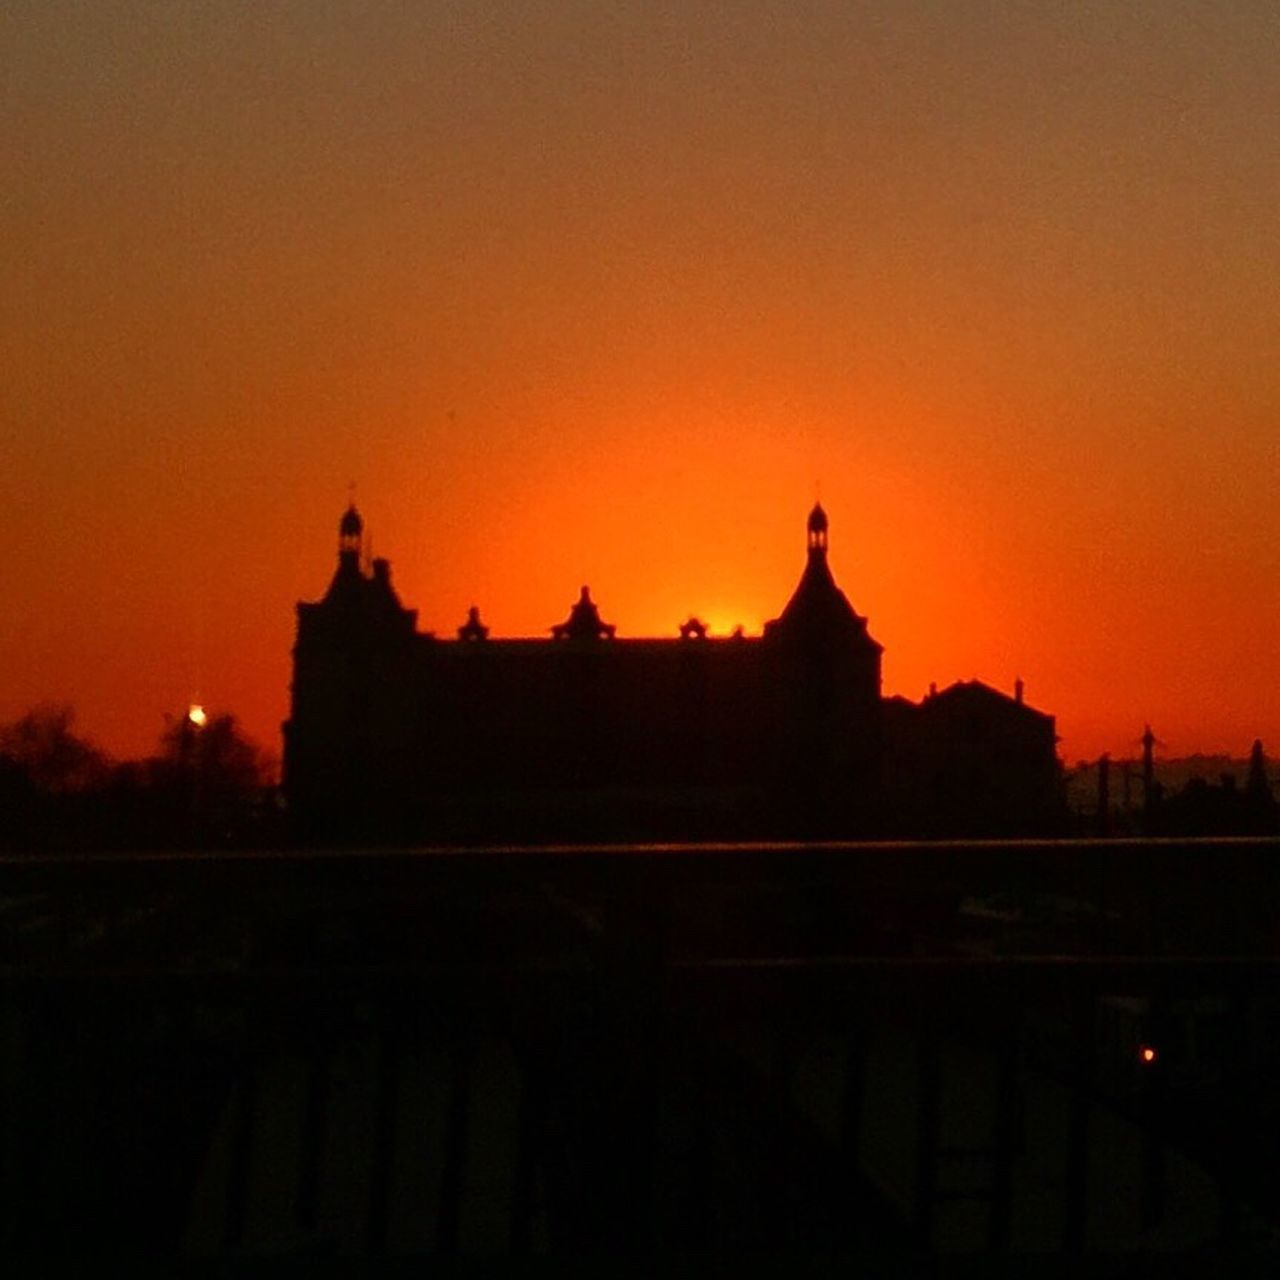 Sunset Architecture Building Exterior Built Structure Orange Color Sky Travel Destinations No People Silhouette Dome Outdoors City EyeEm Streetphotography EyeEm Gallery Haydarpasa Day Haydarpasa Train Station Haydarpaşa Garı